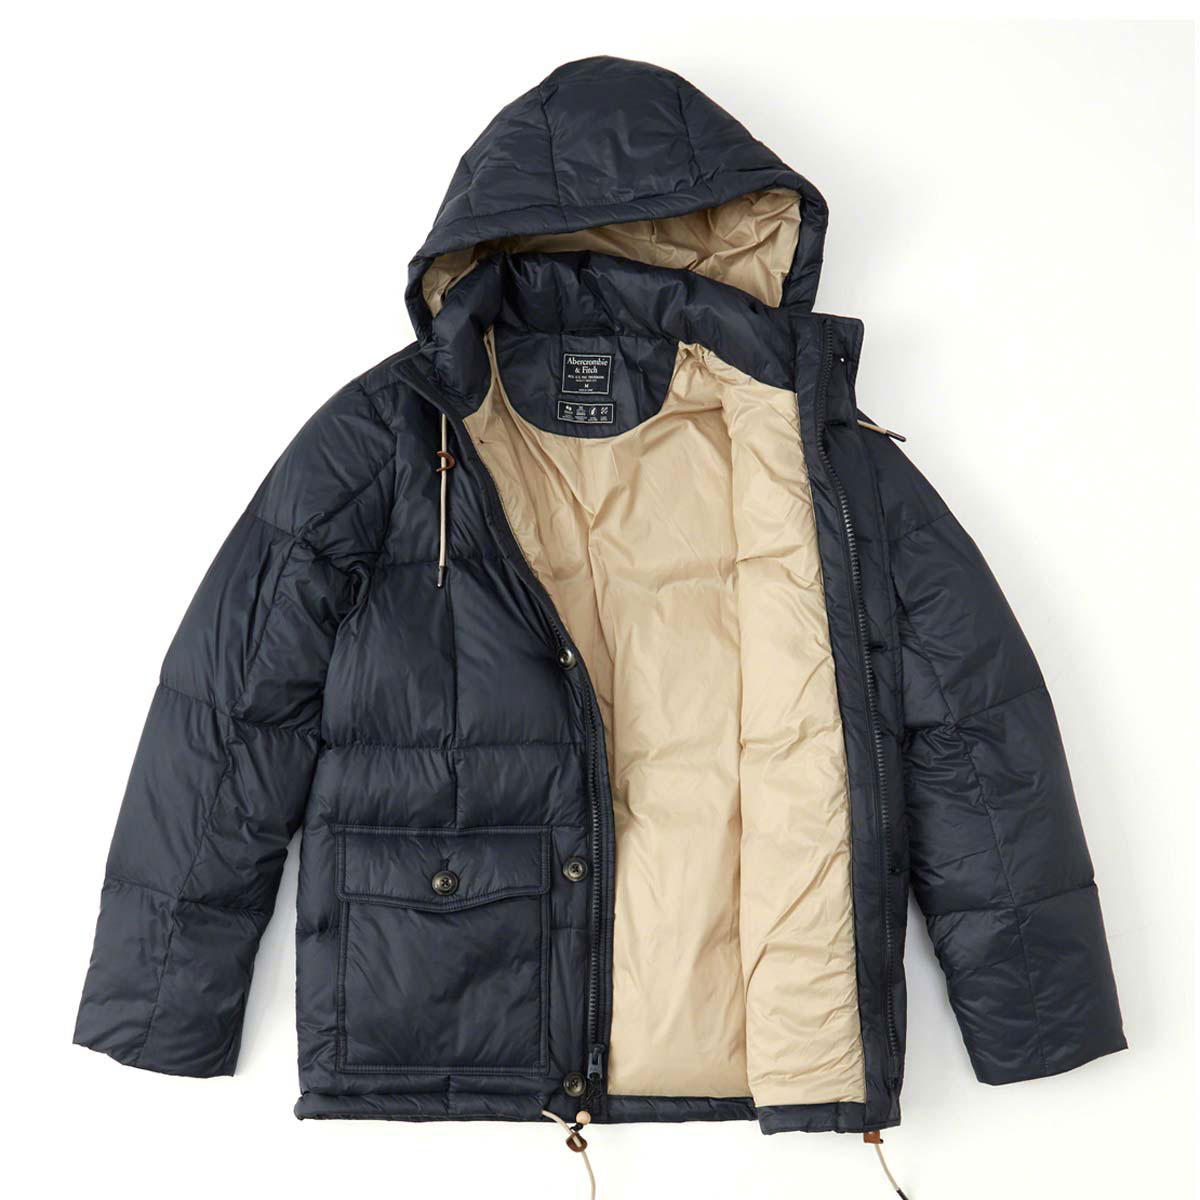 75f382fc7 ABBA black outer men's regular article Abercrombie & Fitch jacket down  jacket DOWN-FILLED PUFFER COAT 132-327-0407-200